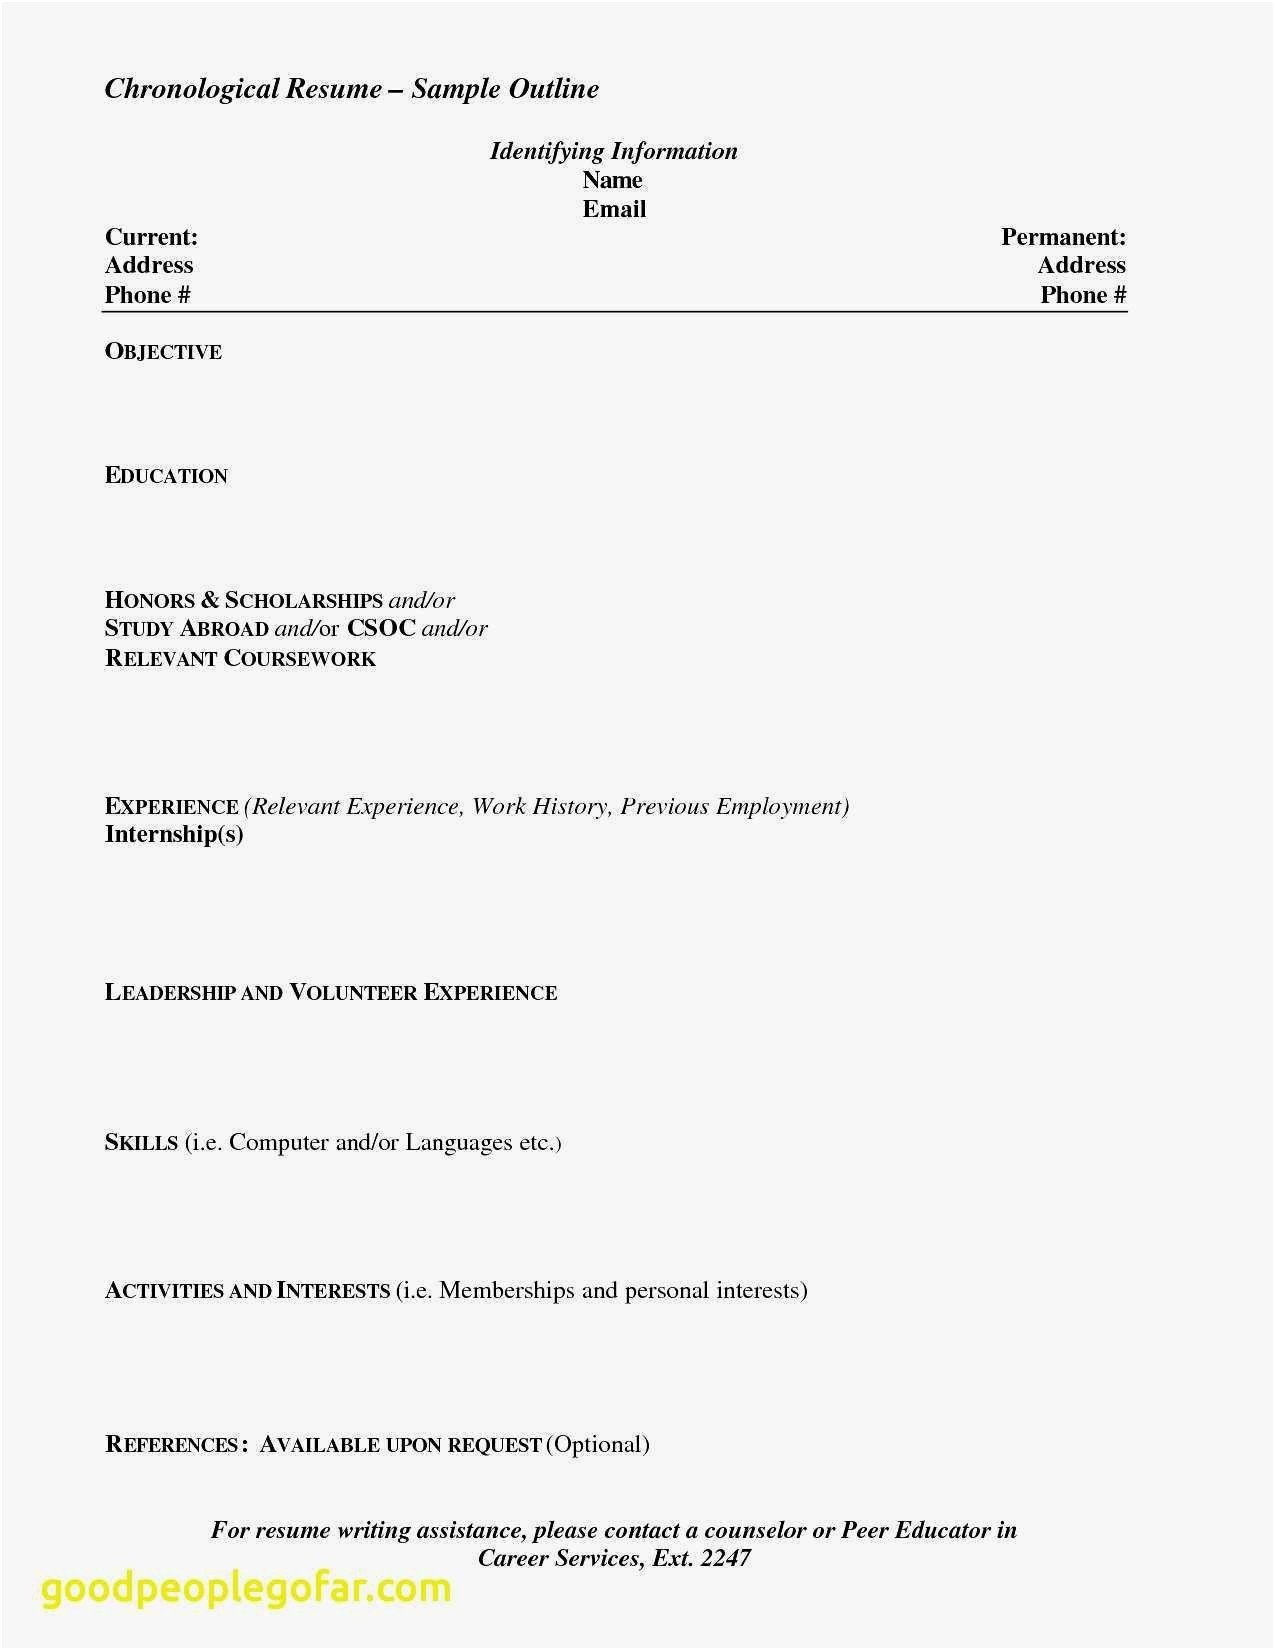 Simple Resume Layout - Simple Resume Layout New Best Resume for Highschool Students